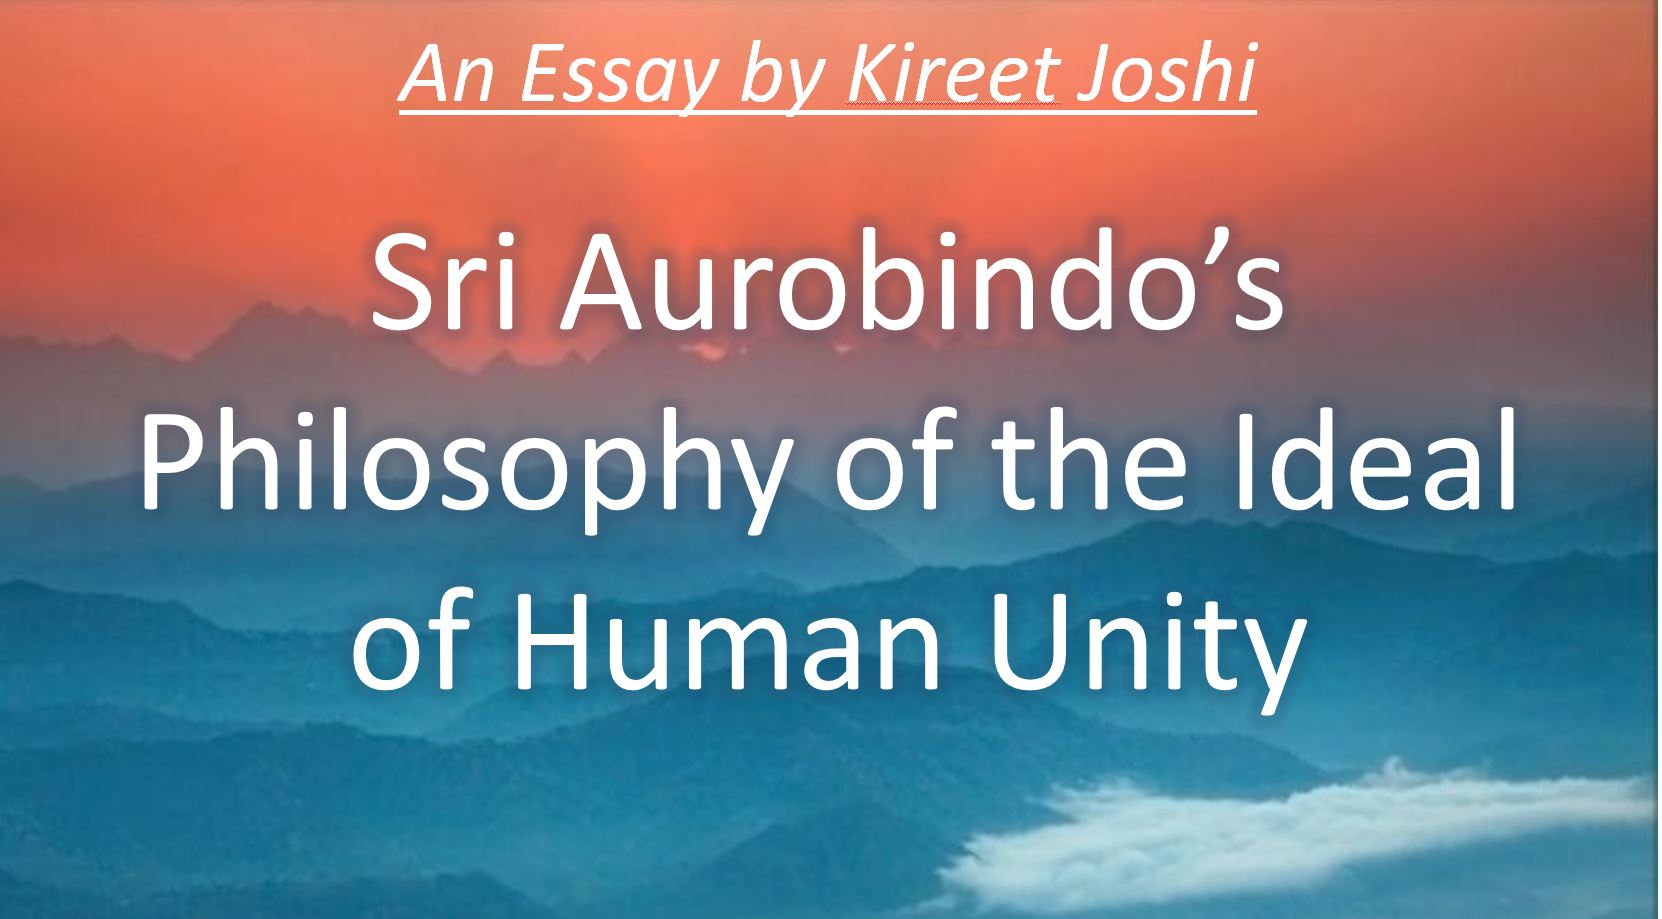 Sri Aurobindo's Philosophy of the Ideal of Human Unity